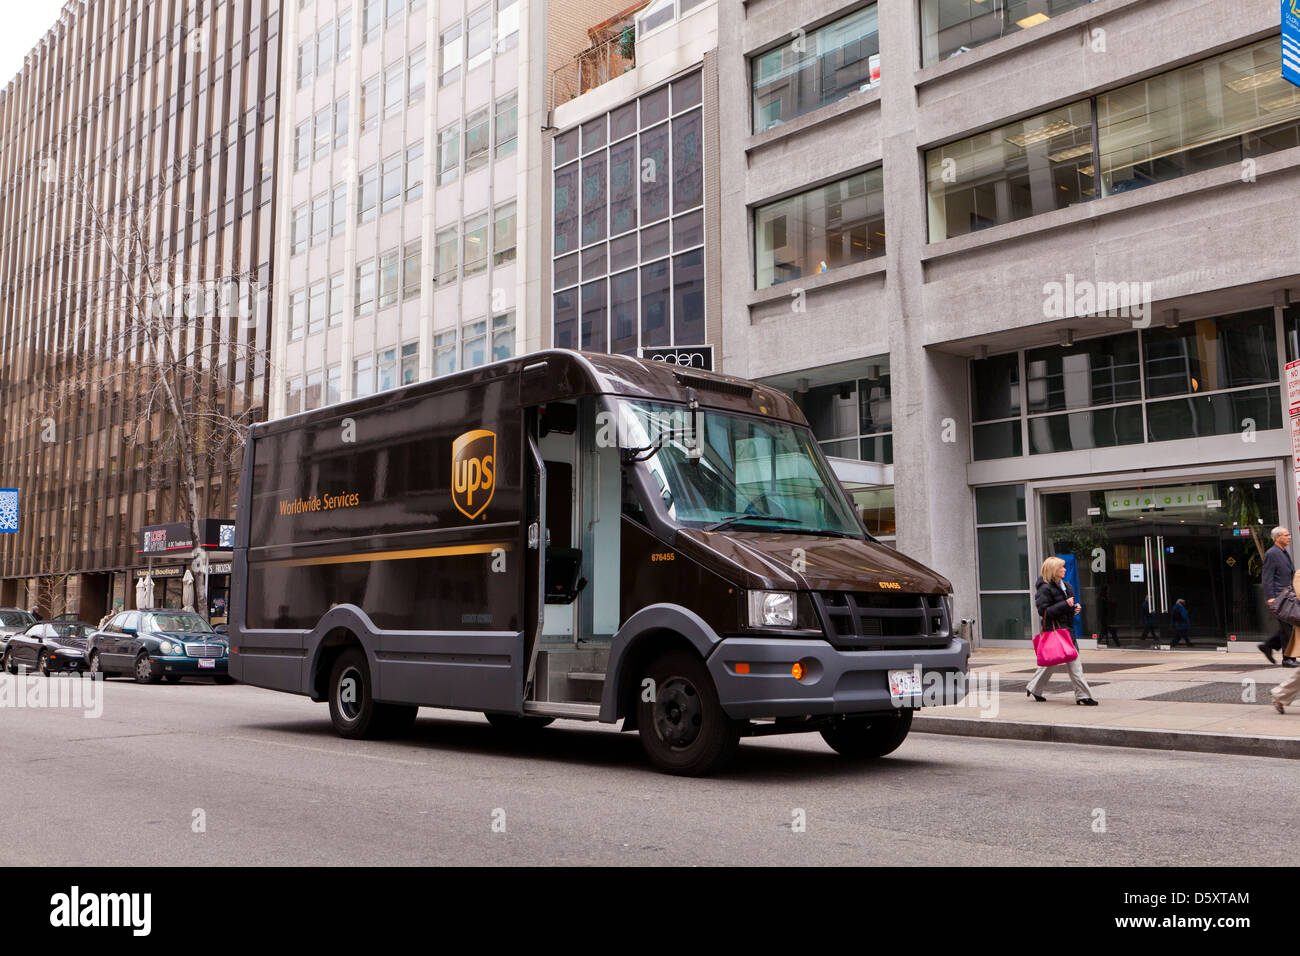 UPS delivery van in front of office building - Stock Image